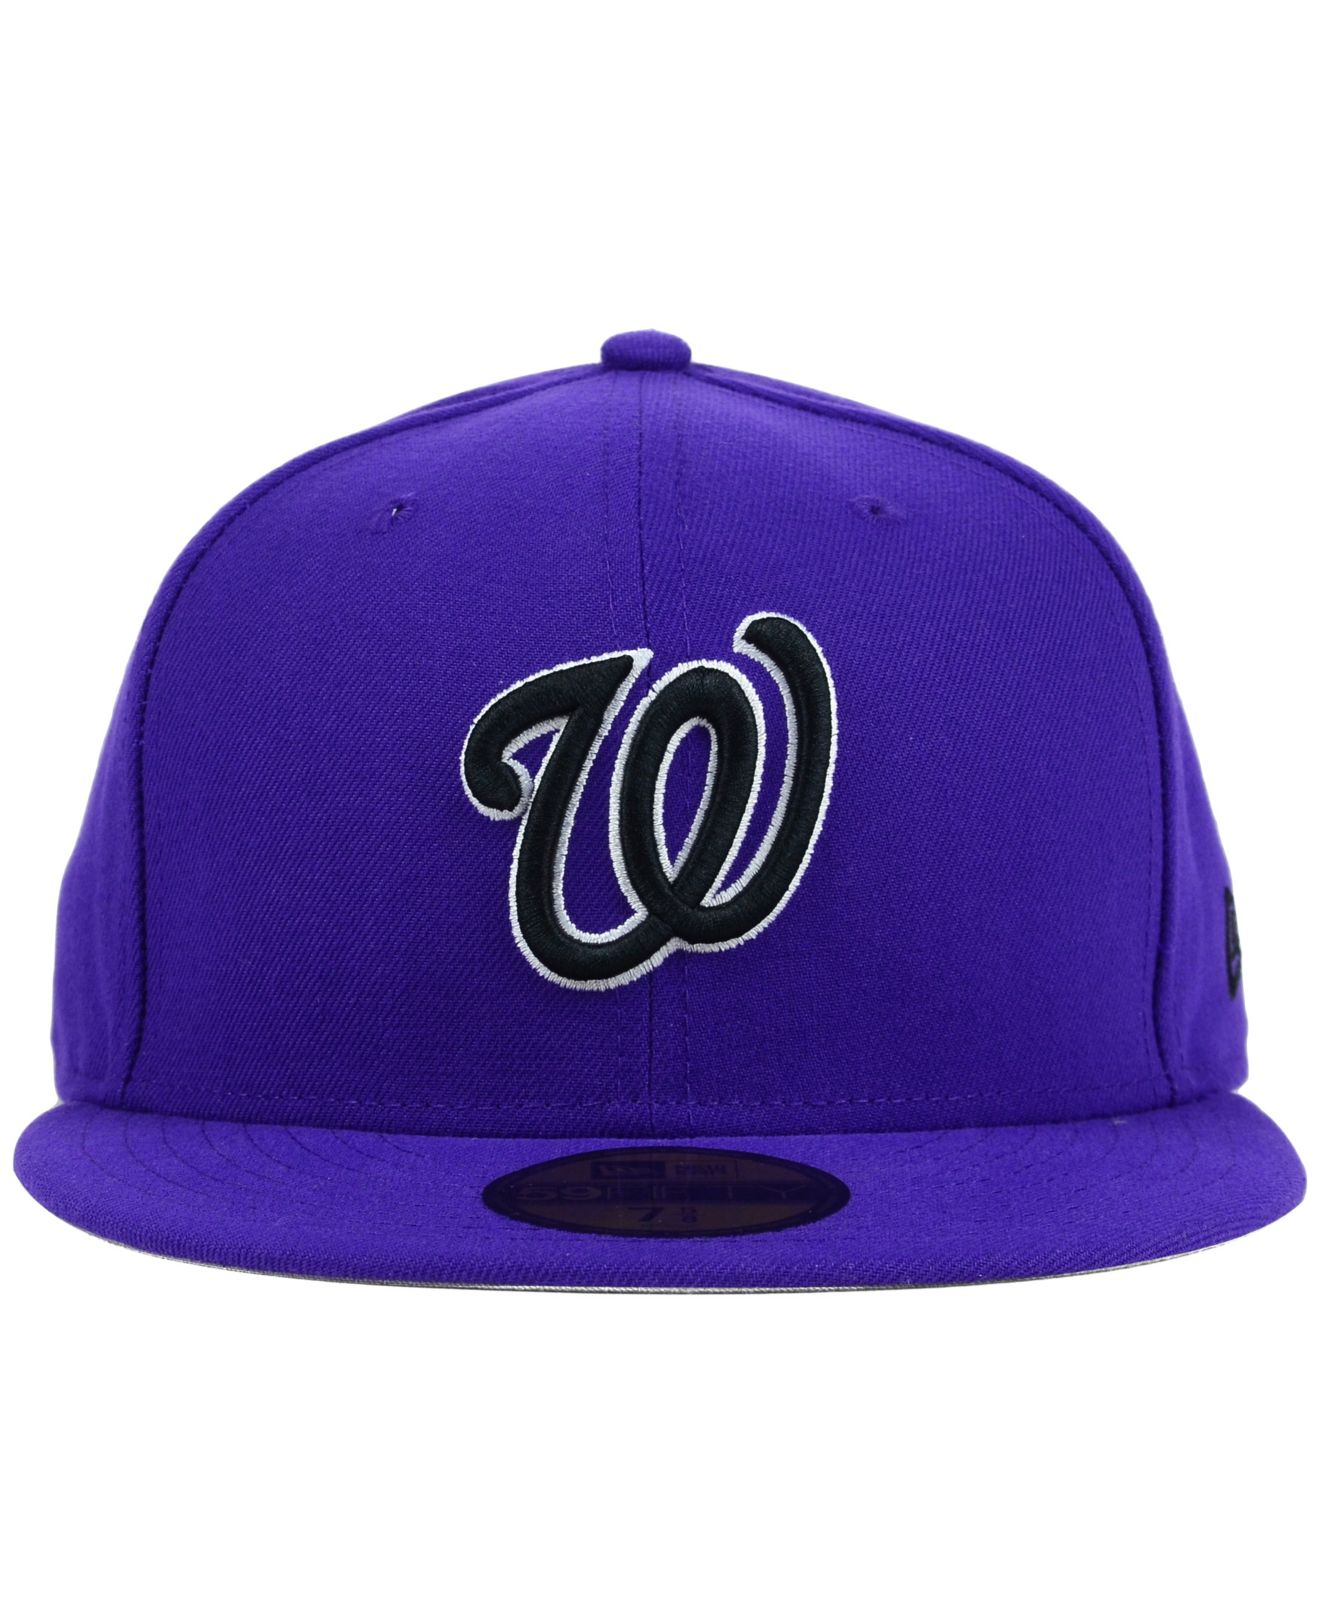 new styles 55467 fa80f ... official lyst ktz washington nationals c dub 59fifty cap in purple for  men 9f946 e6dbe ...